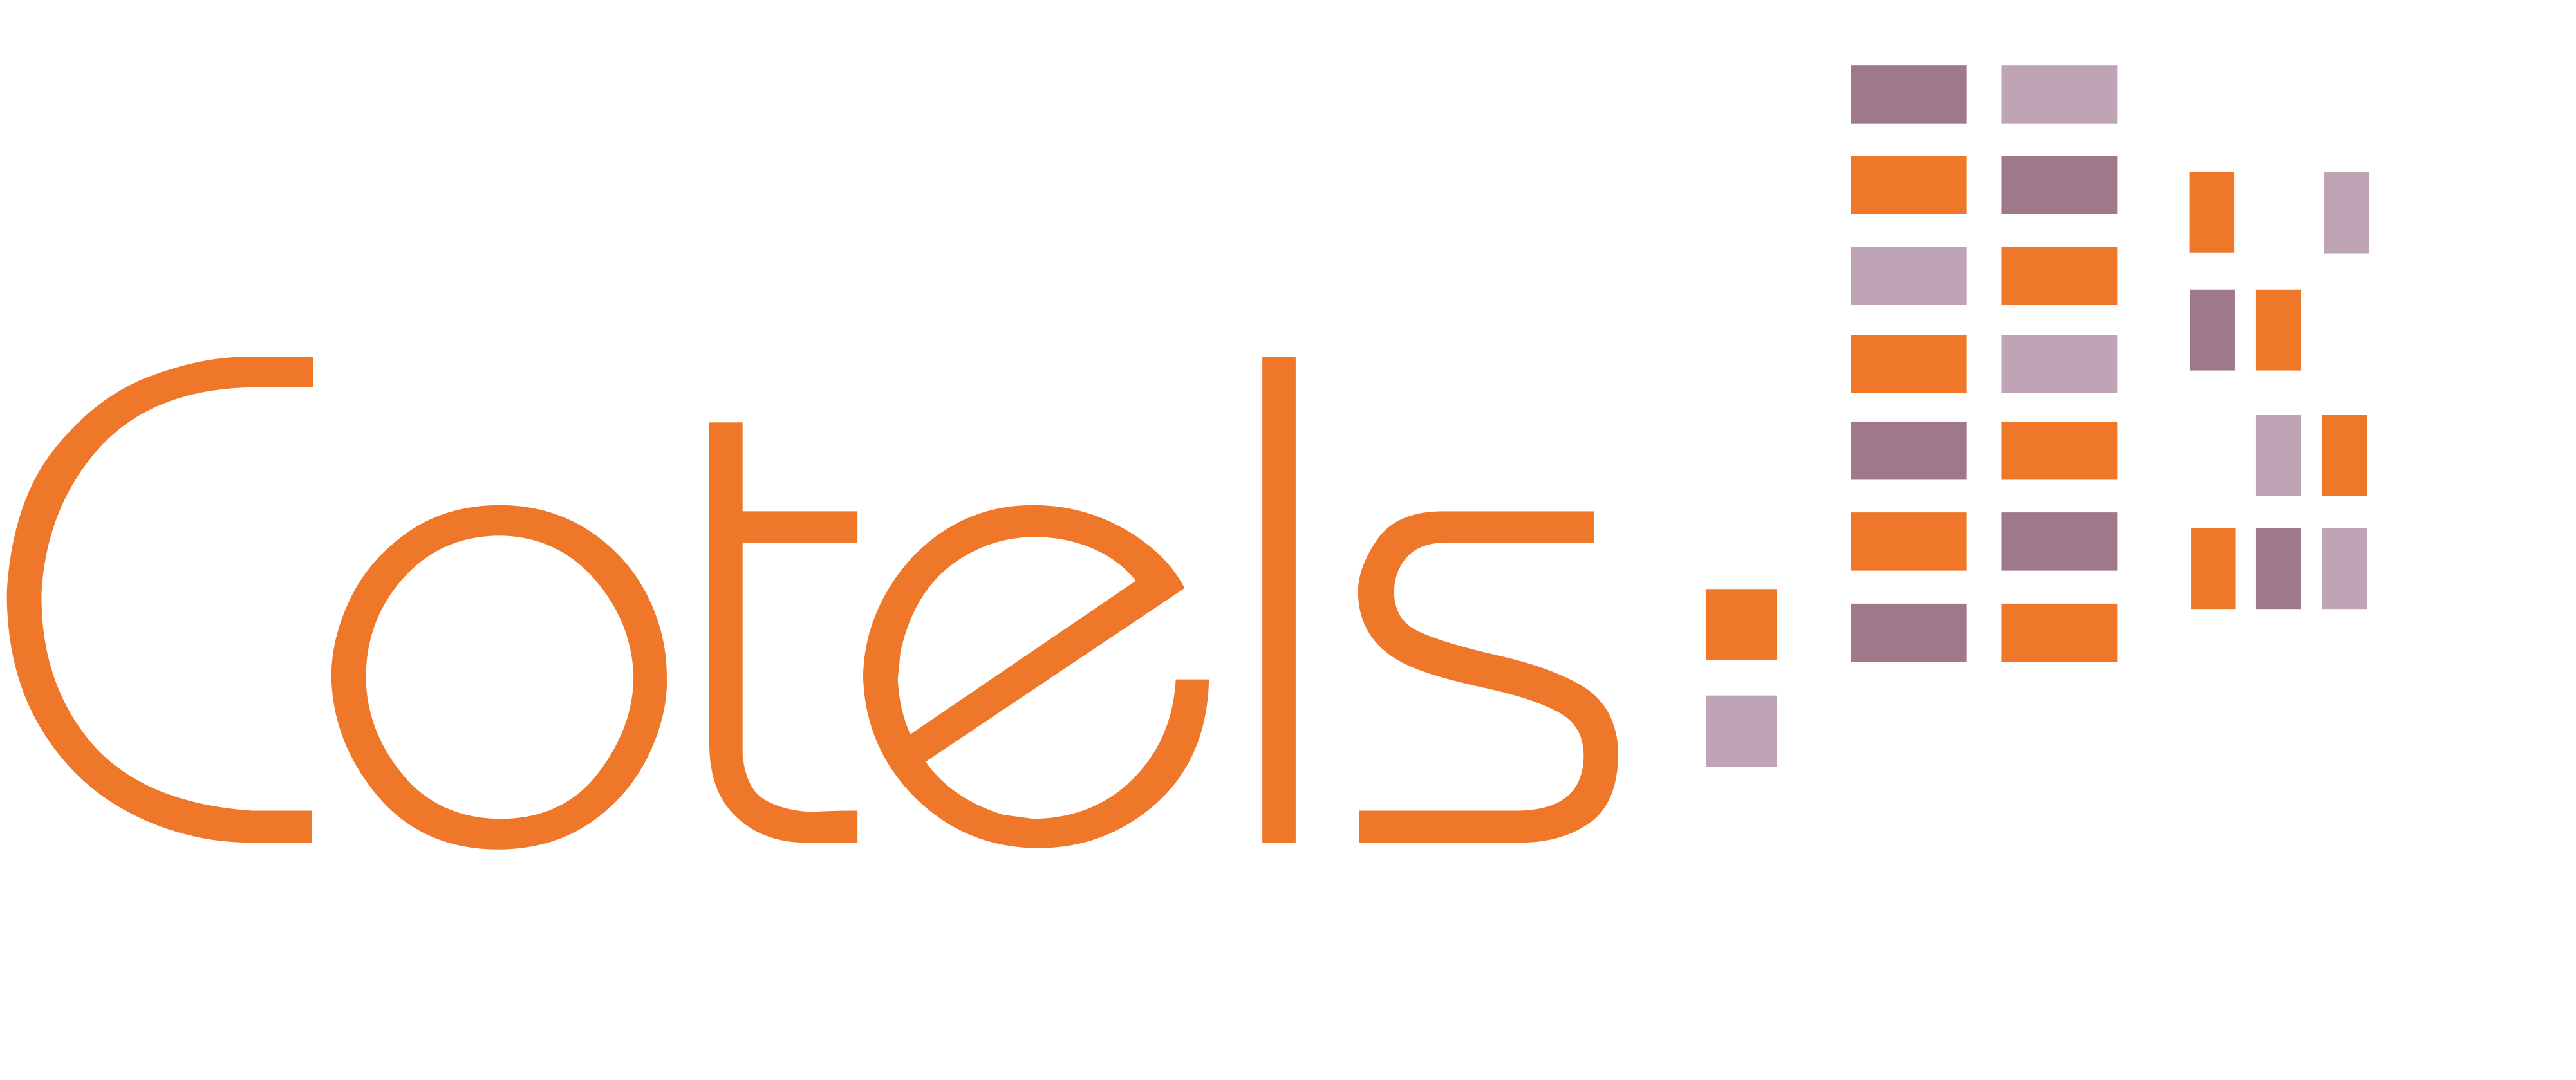 Cotels Serviced Apartments - Online Booking